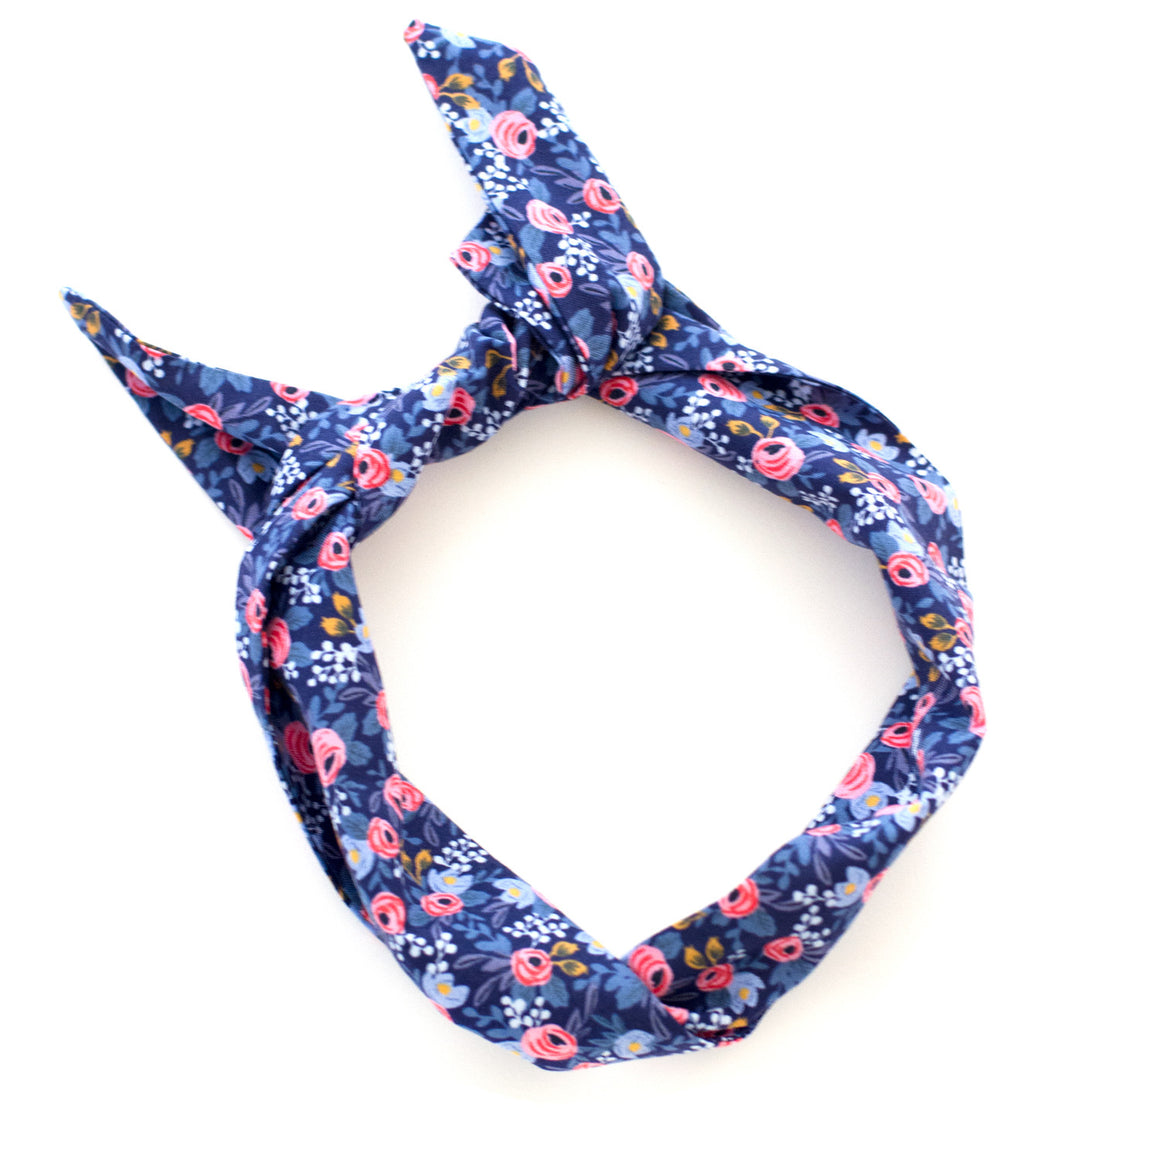 floral wire headband made with classic rifle paper co botanical fabric created by mane message